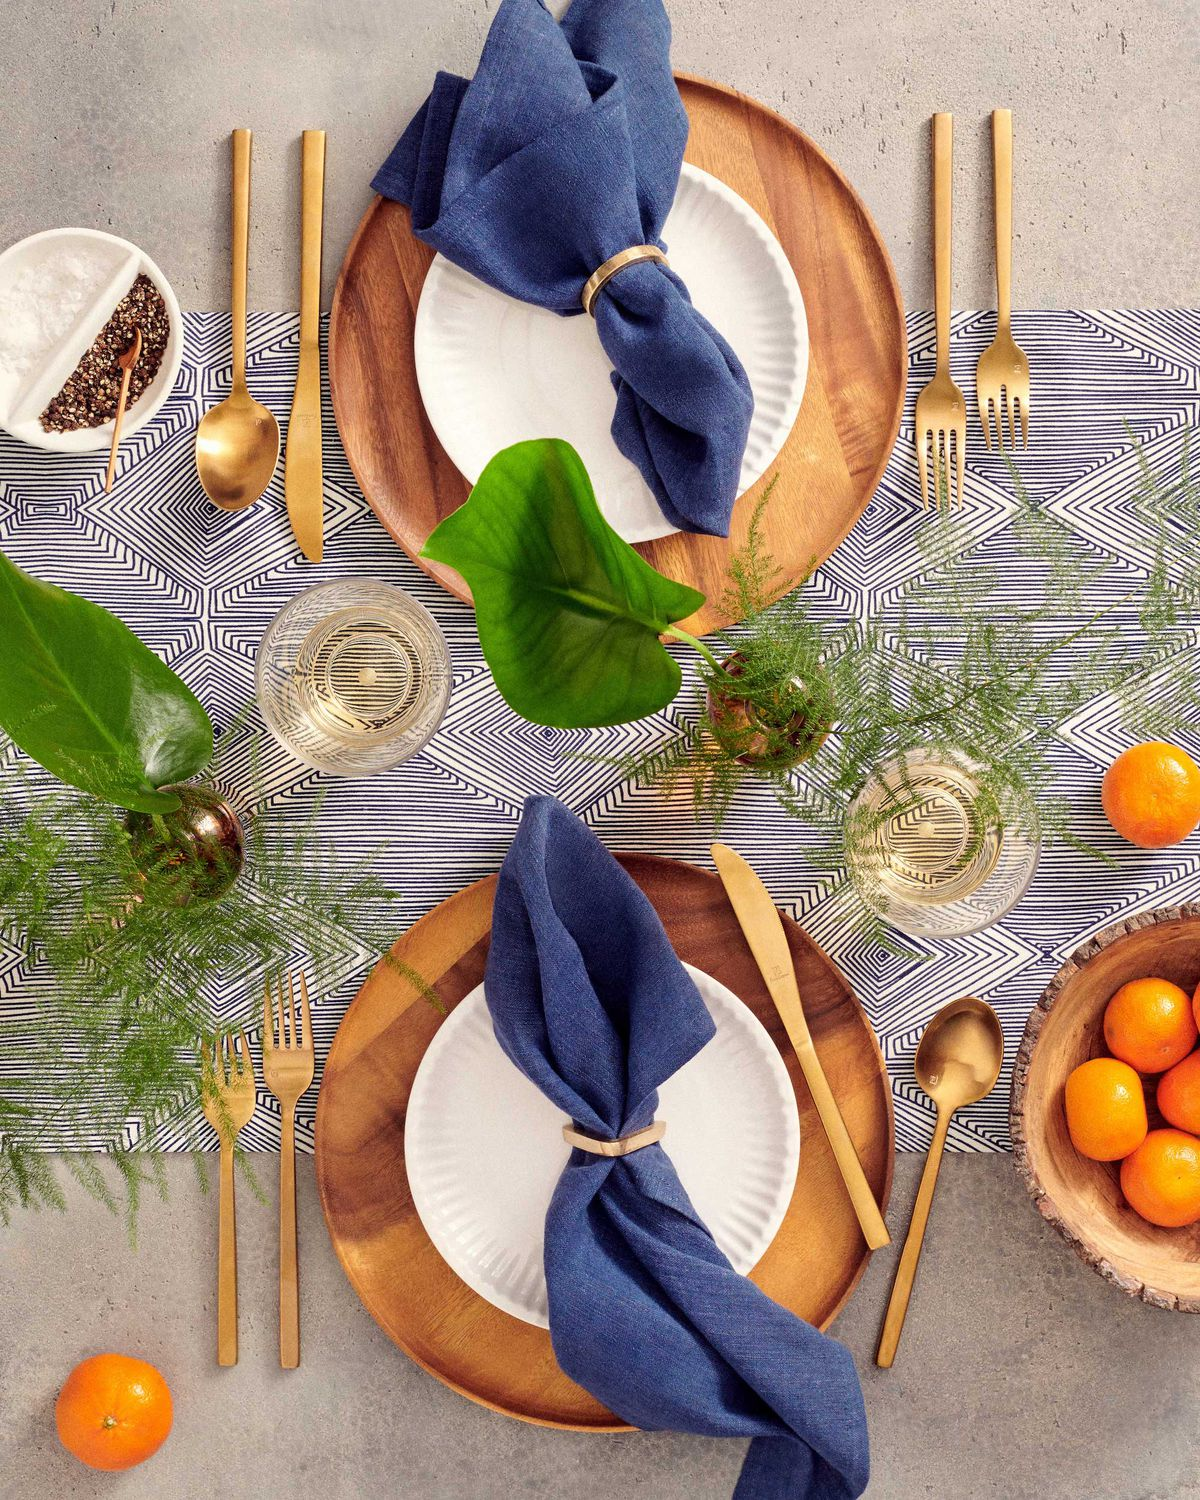 Place setting with wooden plate, gold flatware, and dark blue napkins.